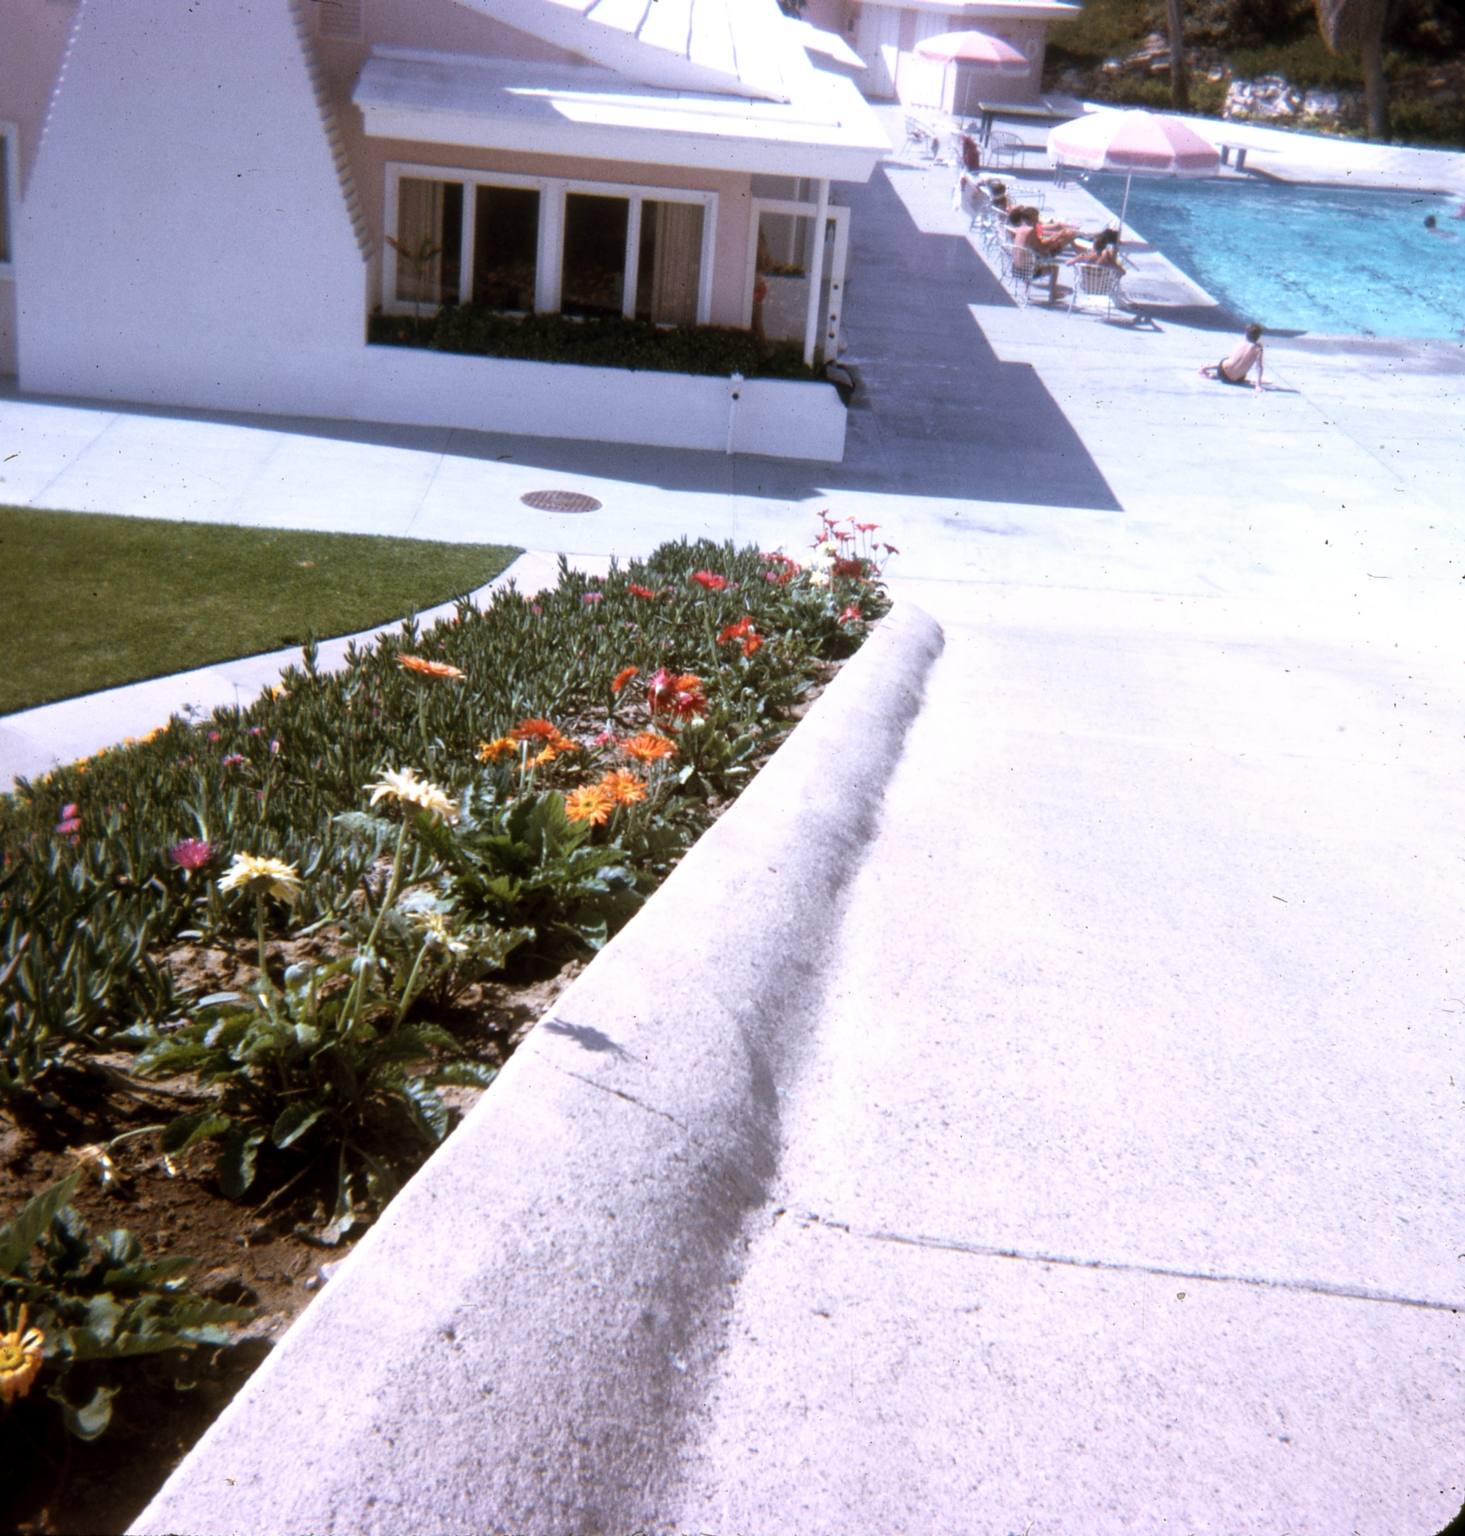 A flowerbed along a walkway leading to the swimming pool at the Dana Strand Club.